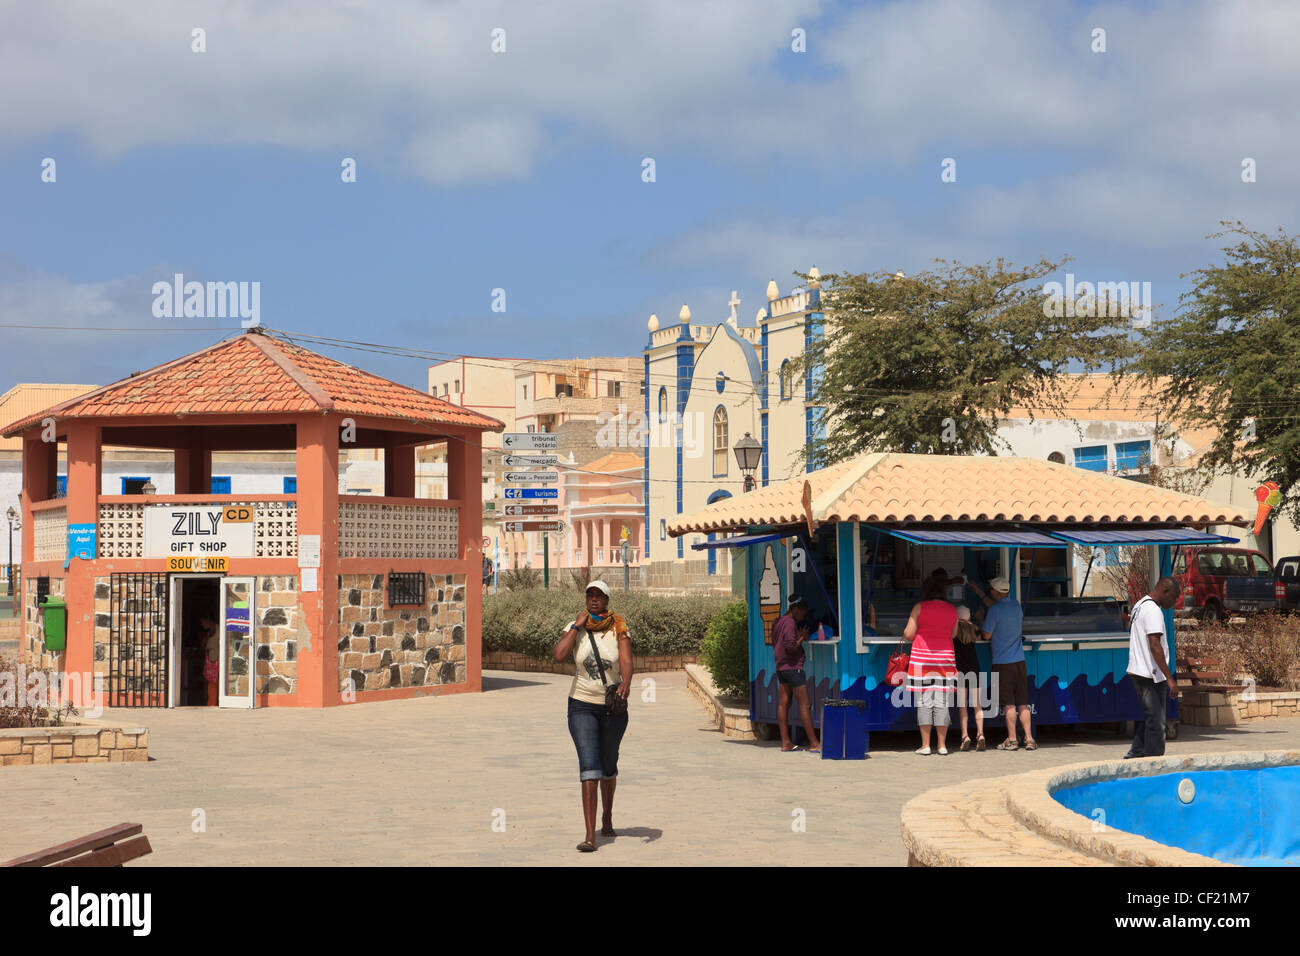 Gift shop and ice cream parlour in the main square of the city of Sal Rei, Boa Vista, Cape Verde Islands - Stock Image